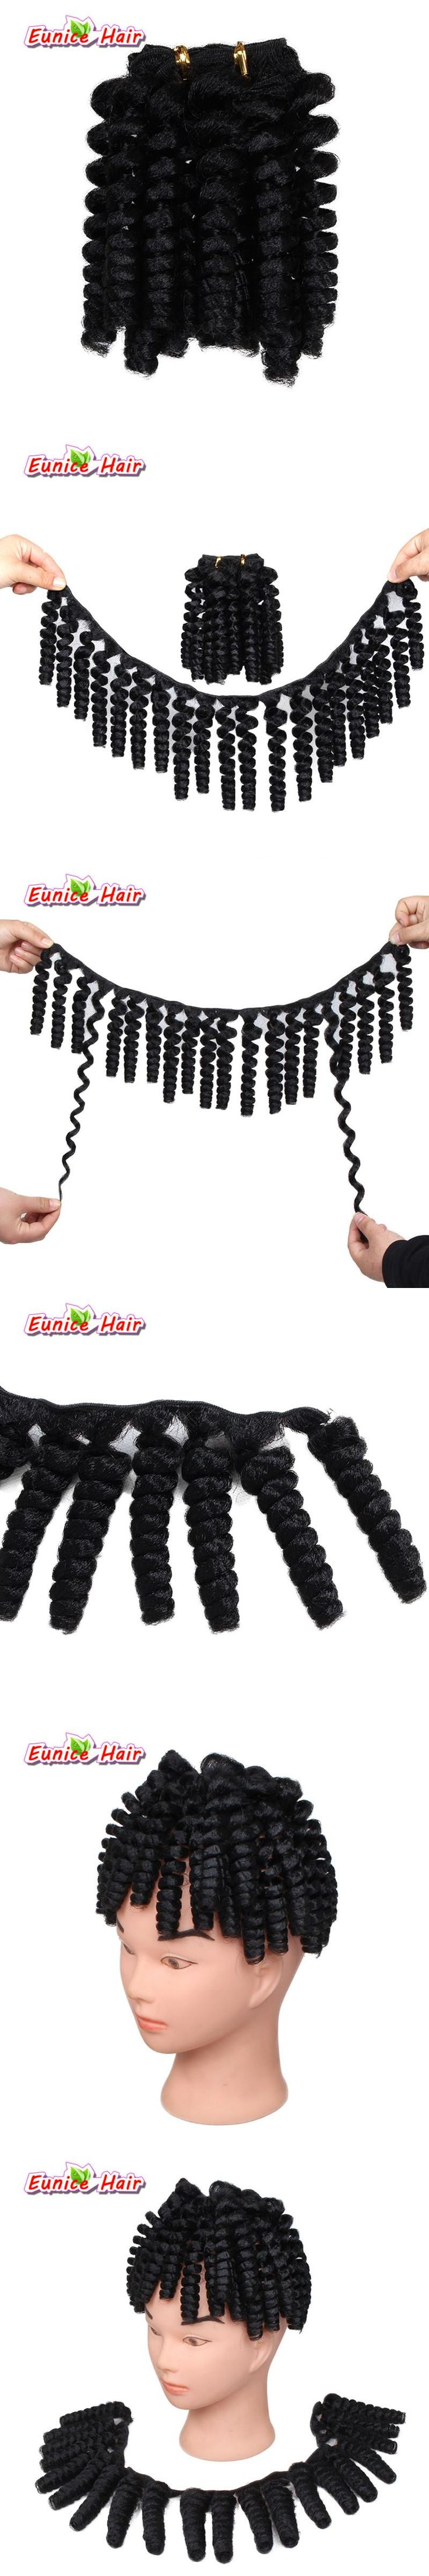 Pre-Curled Textured Synthetic Hair Weft 20inch Black Bouncy Curl Weft Synthetic Crochet Braids Hair Extensions 70g/pack